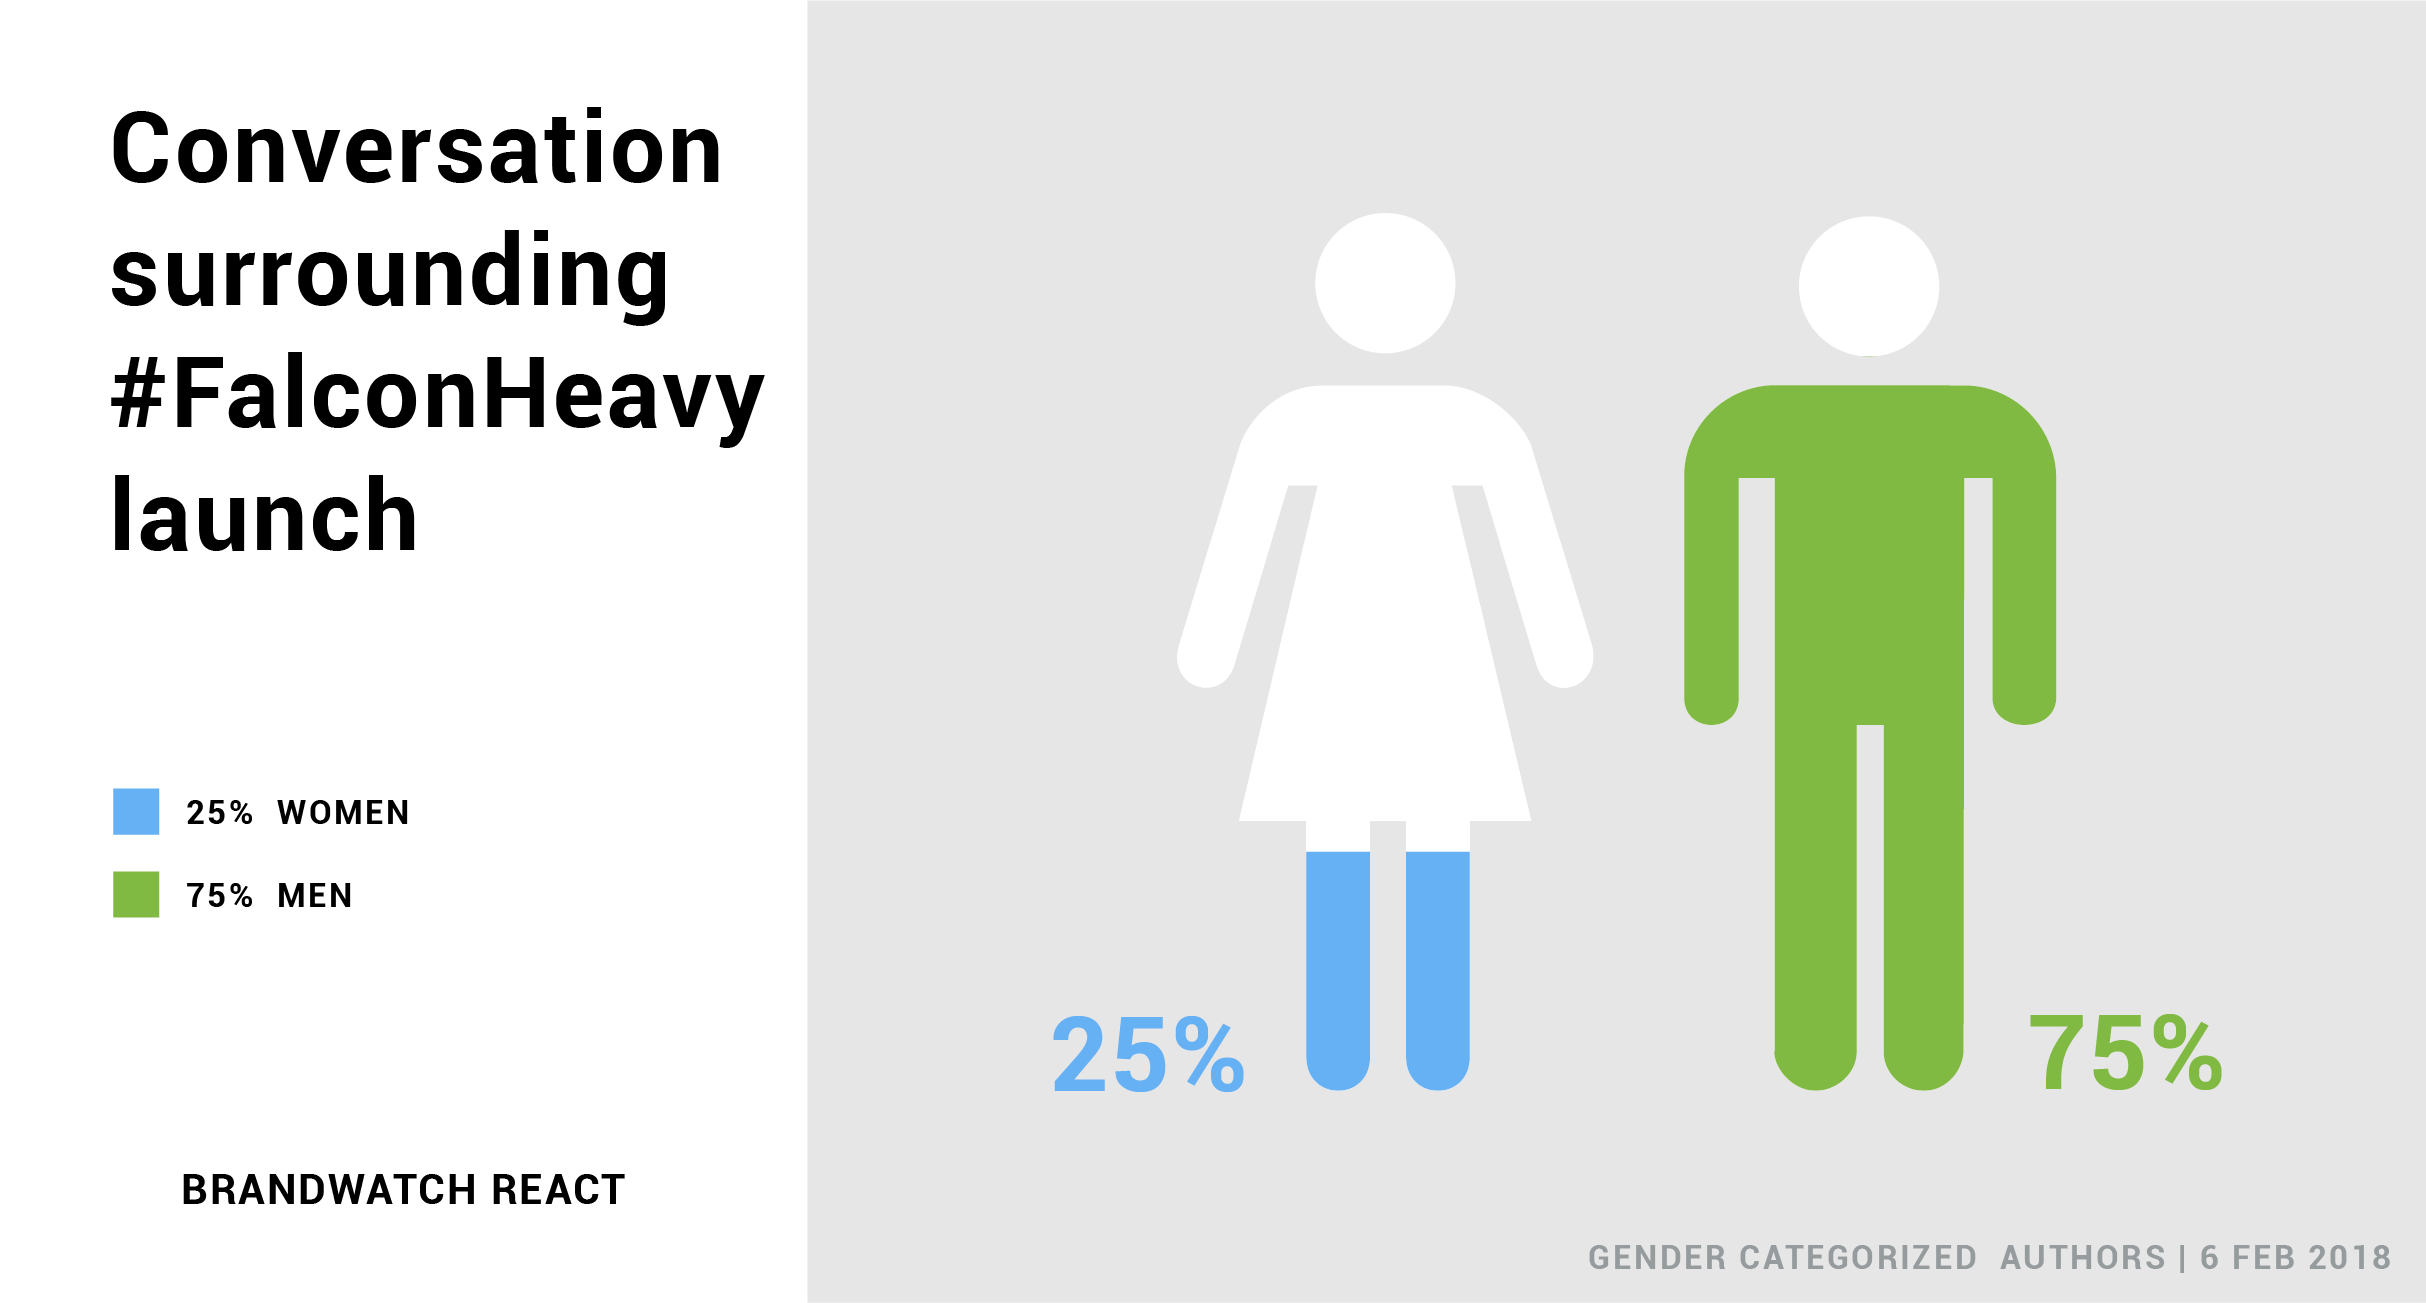 Visualization shows that 75% of gender categorized tweeters talking about the launch were male.